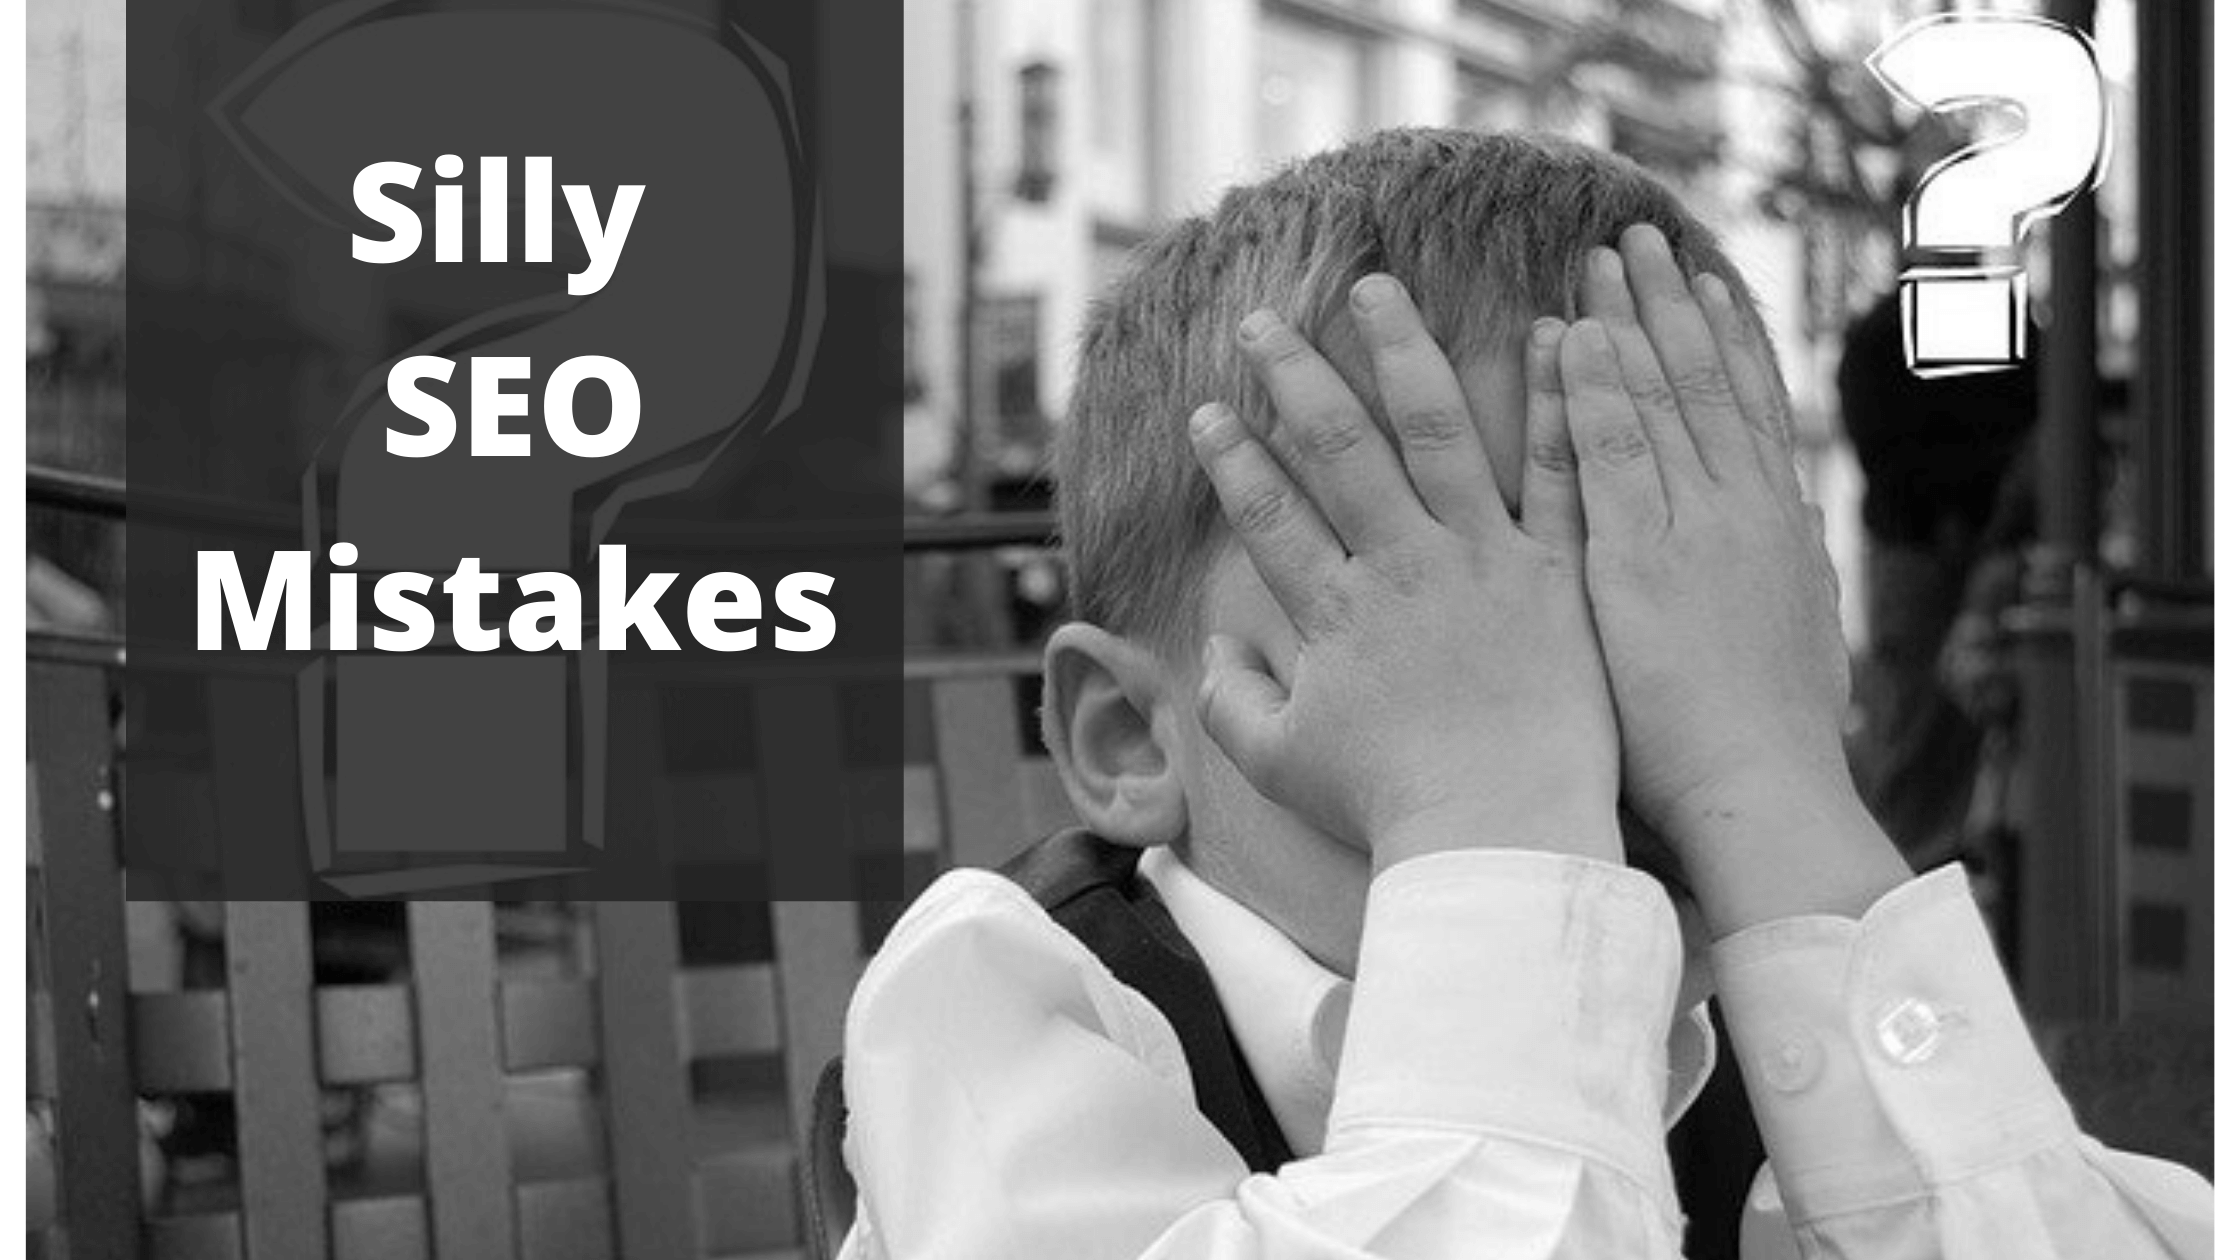 6 Silly SEO Mistakes that Pushing Down your Website in 2020